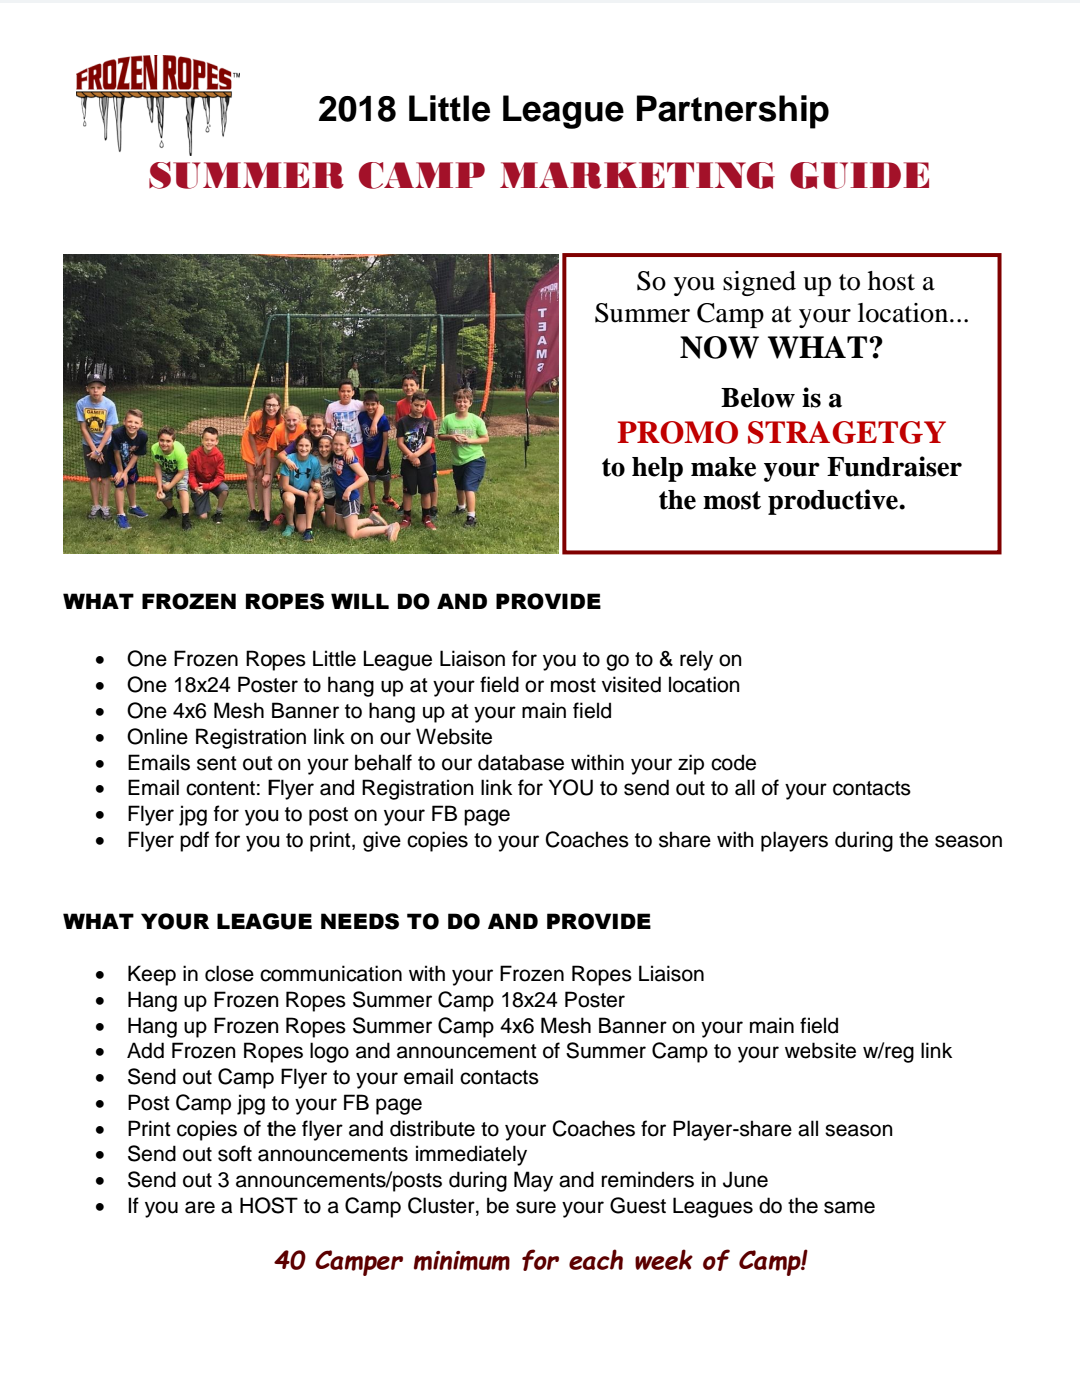 Summer Camp Marketing Guide